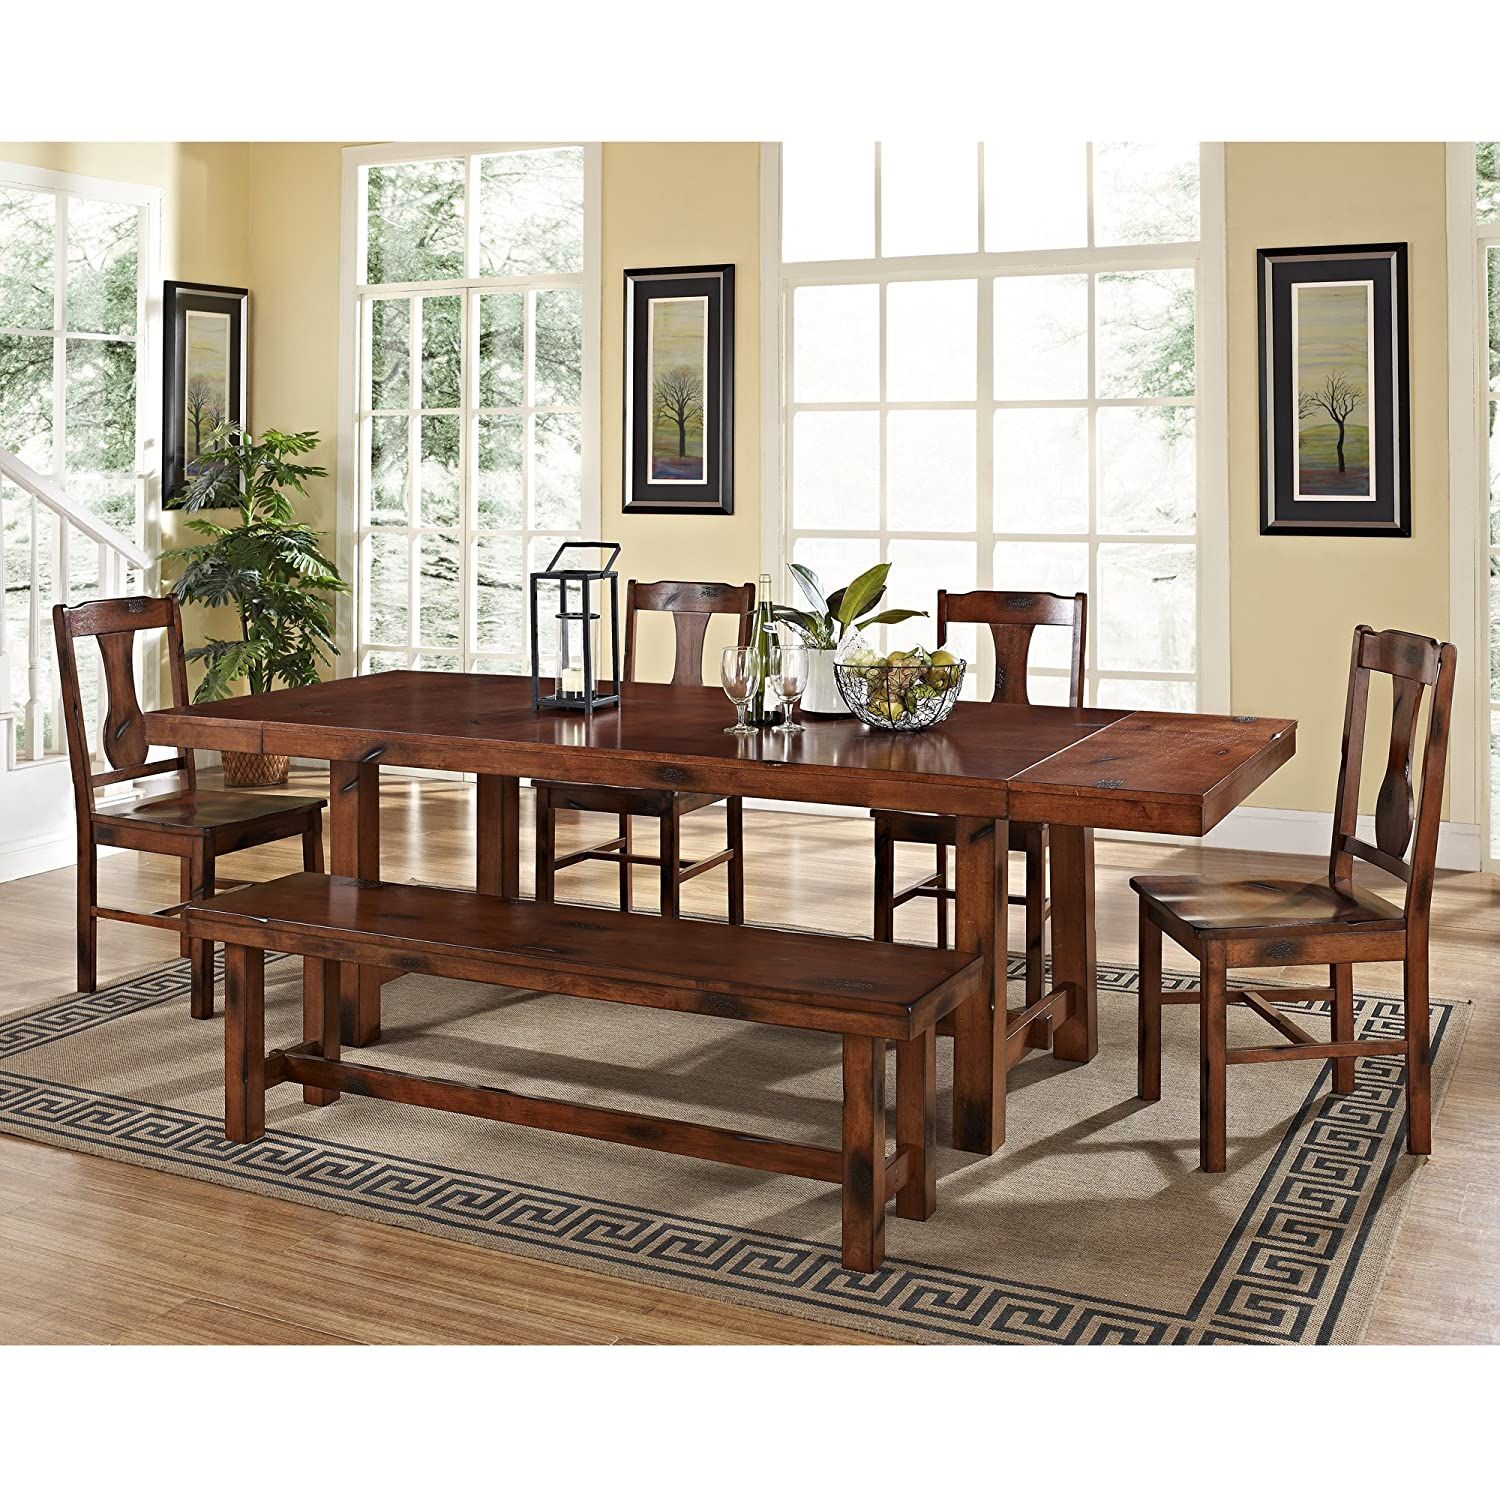 Fine 6 Piece Solid Wood Dining Set Dark Oak Download Free Architecture Designs Rallybritishbridgeorg